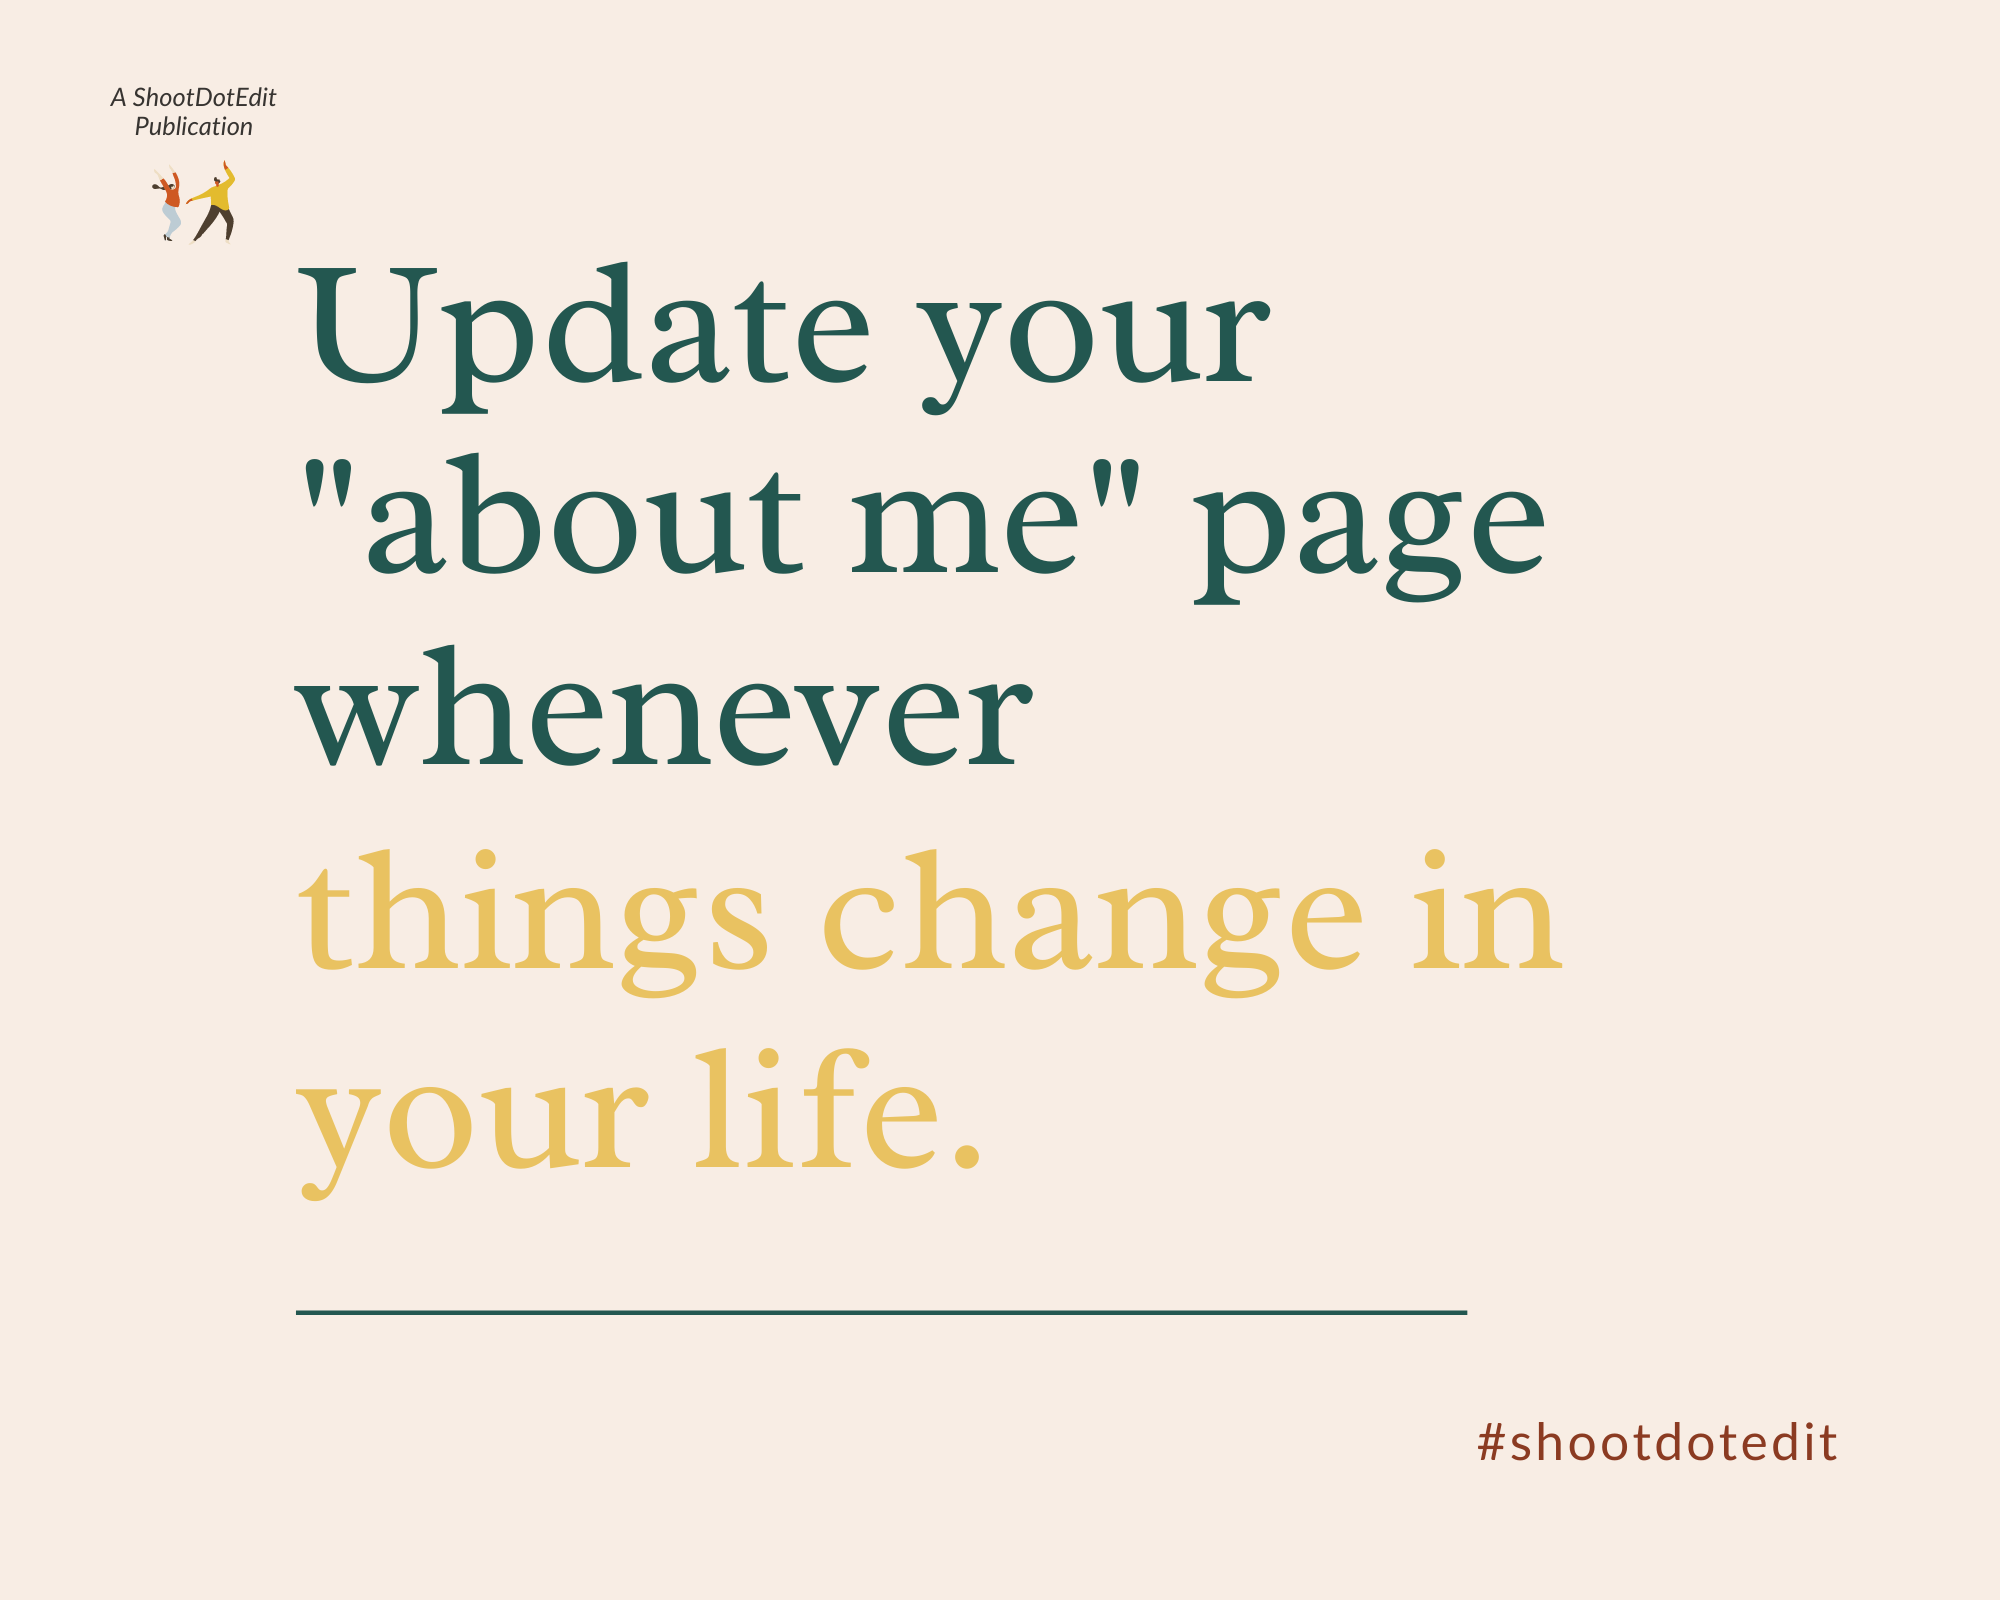 Infographic stating update your about me page whenever things change in your life